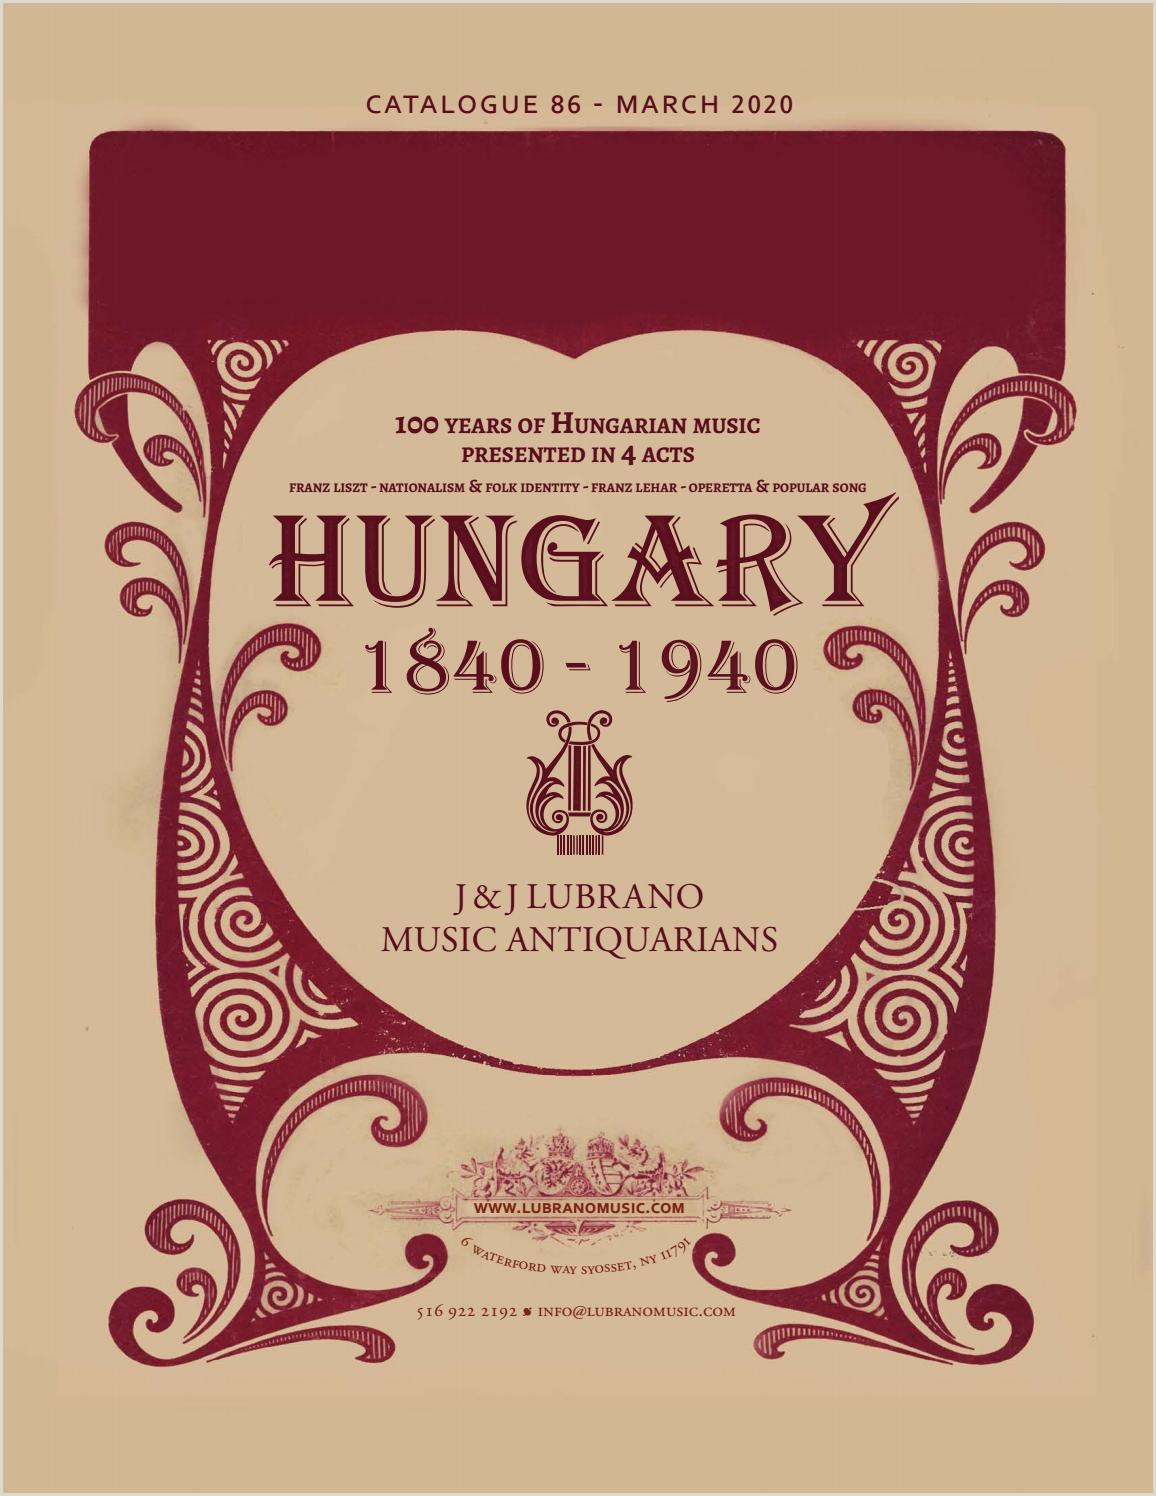 The Best Business Cards Of Cello Teacher 100 Years Of Hungarian Music By J & J Lubrano Music